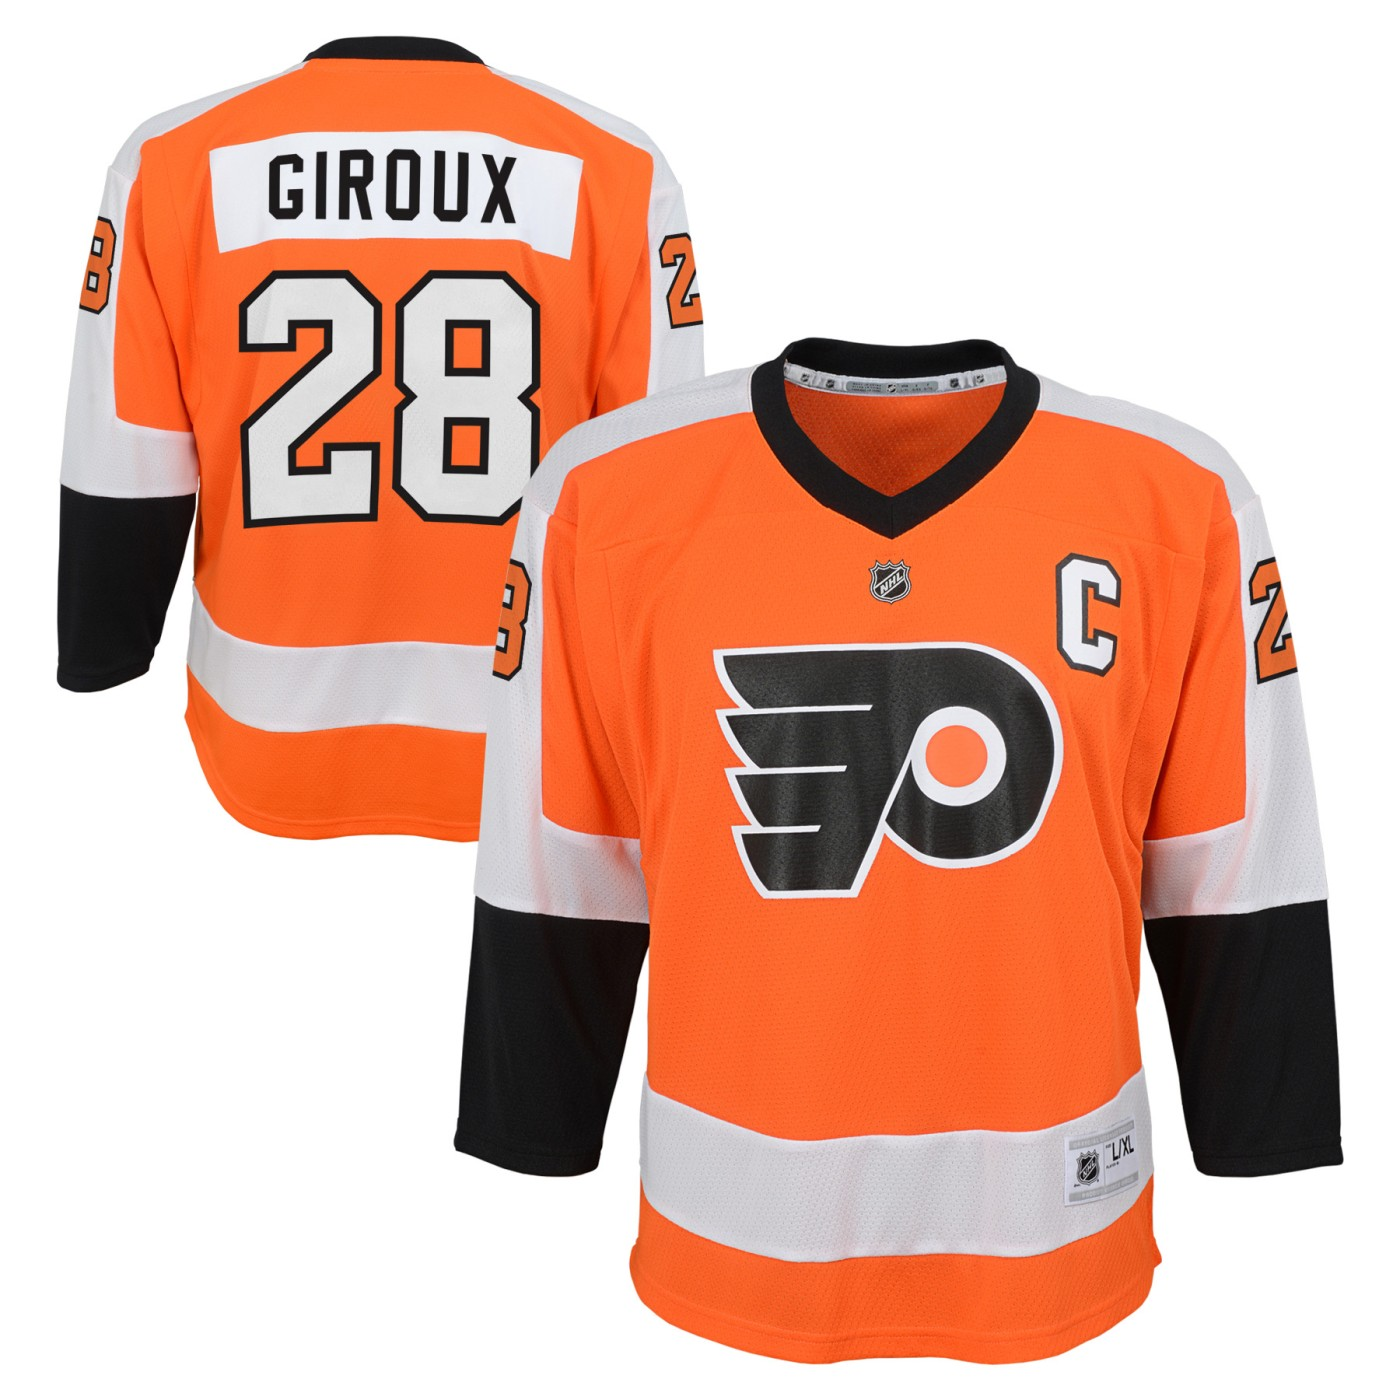 Claude Giroux Philadelphia Flyers Youth NHL Orange Replica Hockey Jersey